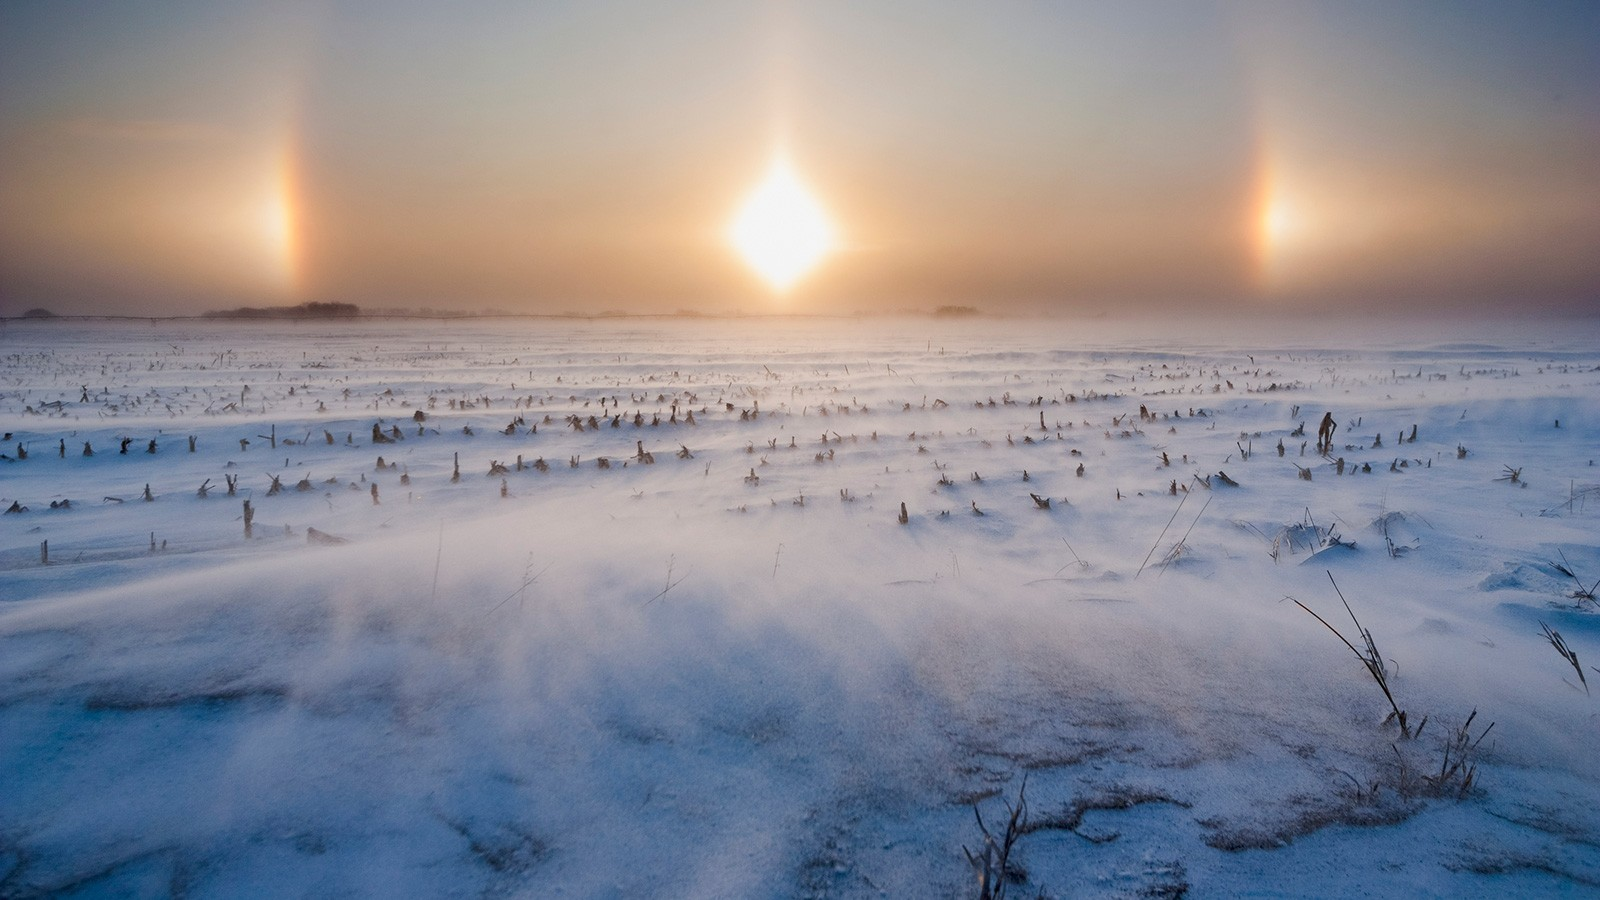 Sun dog halo and ice crystals